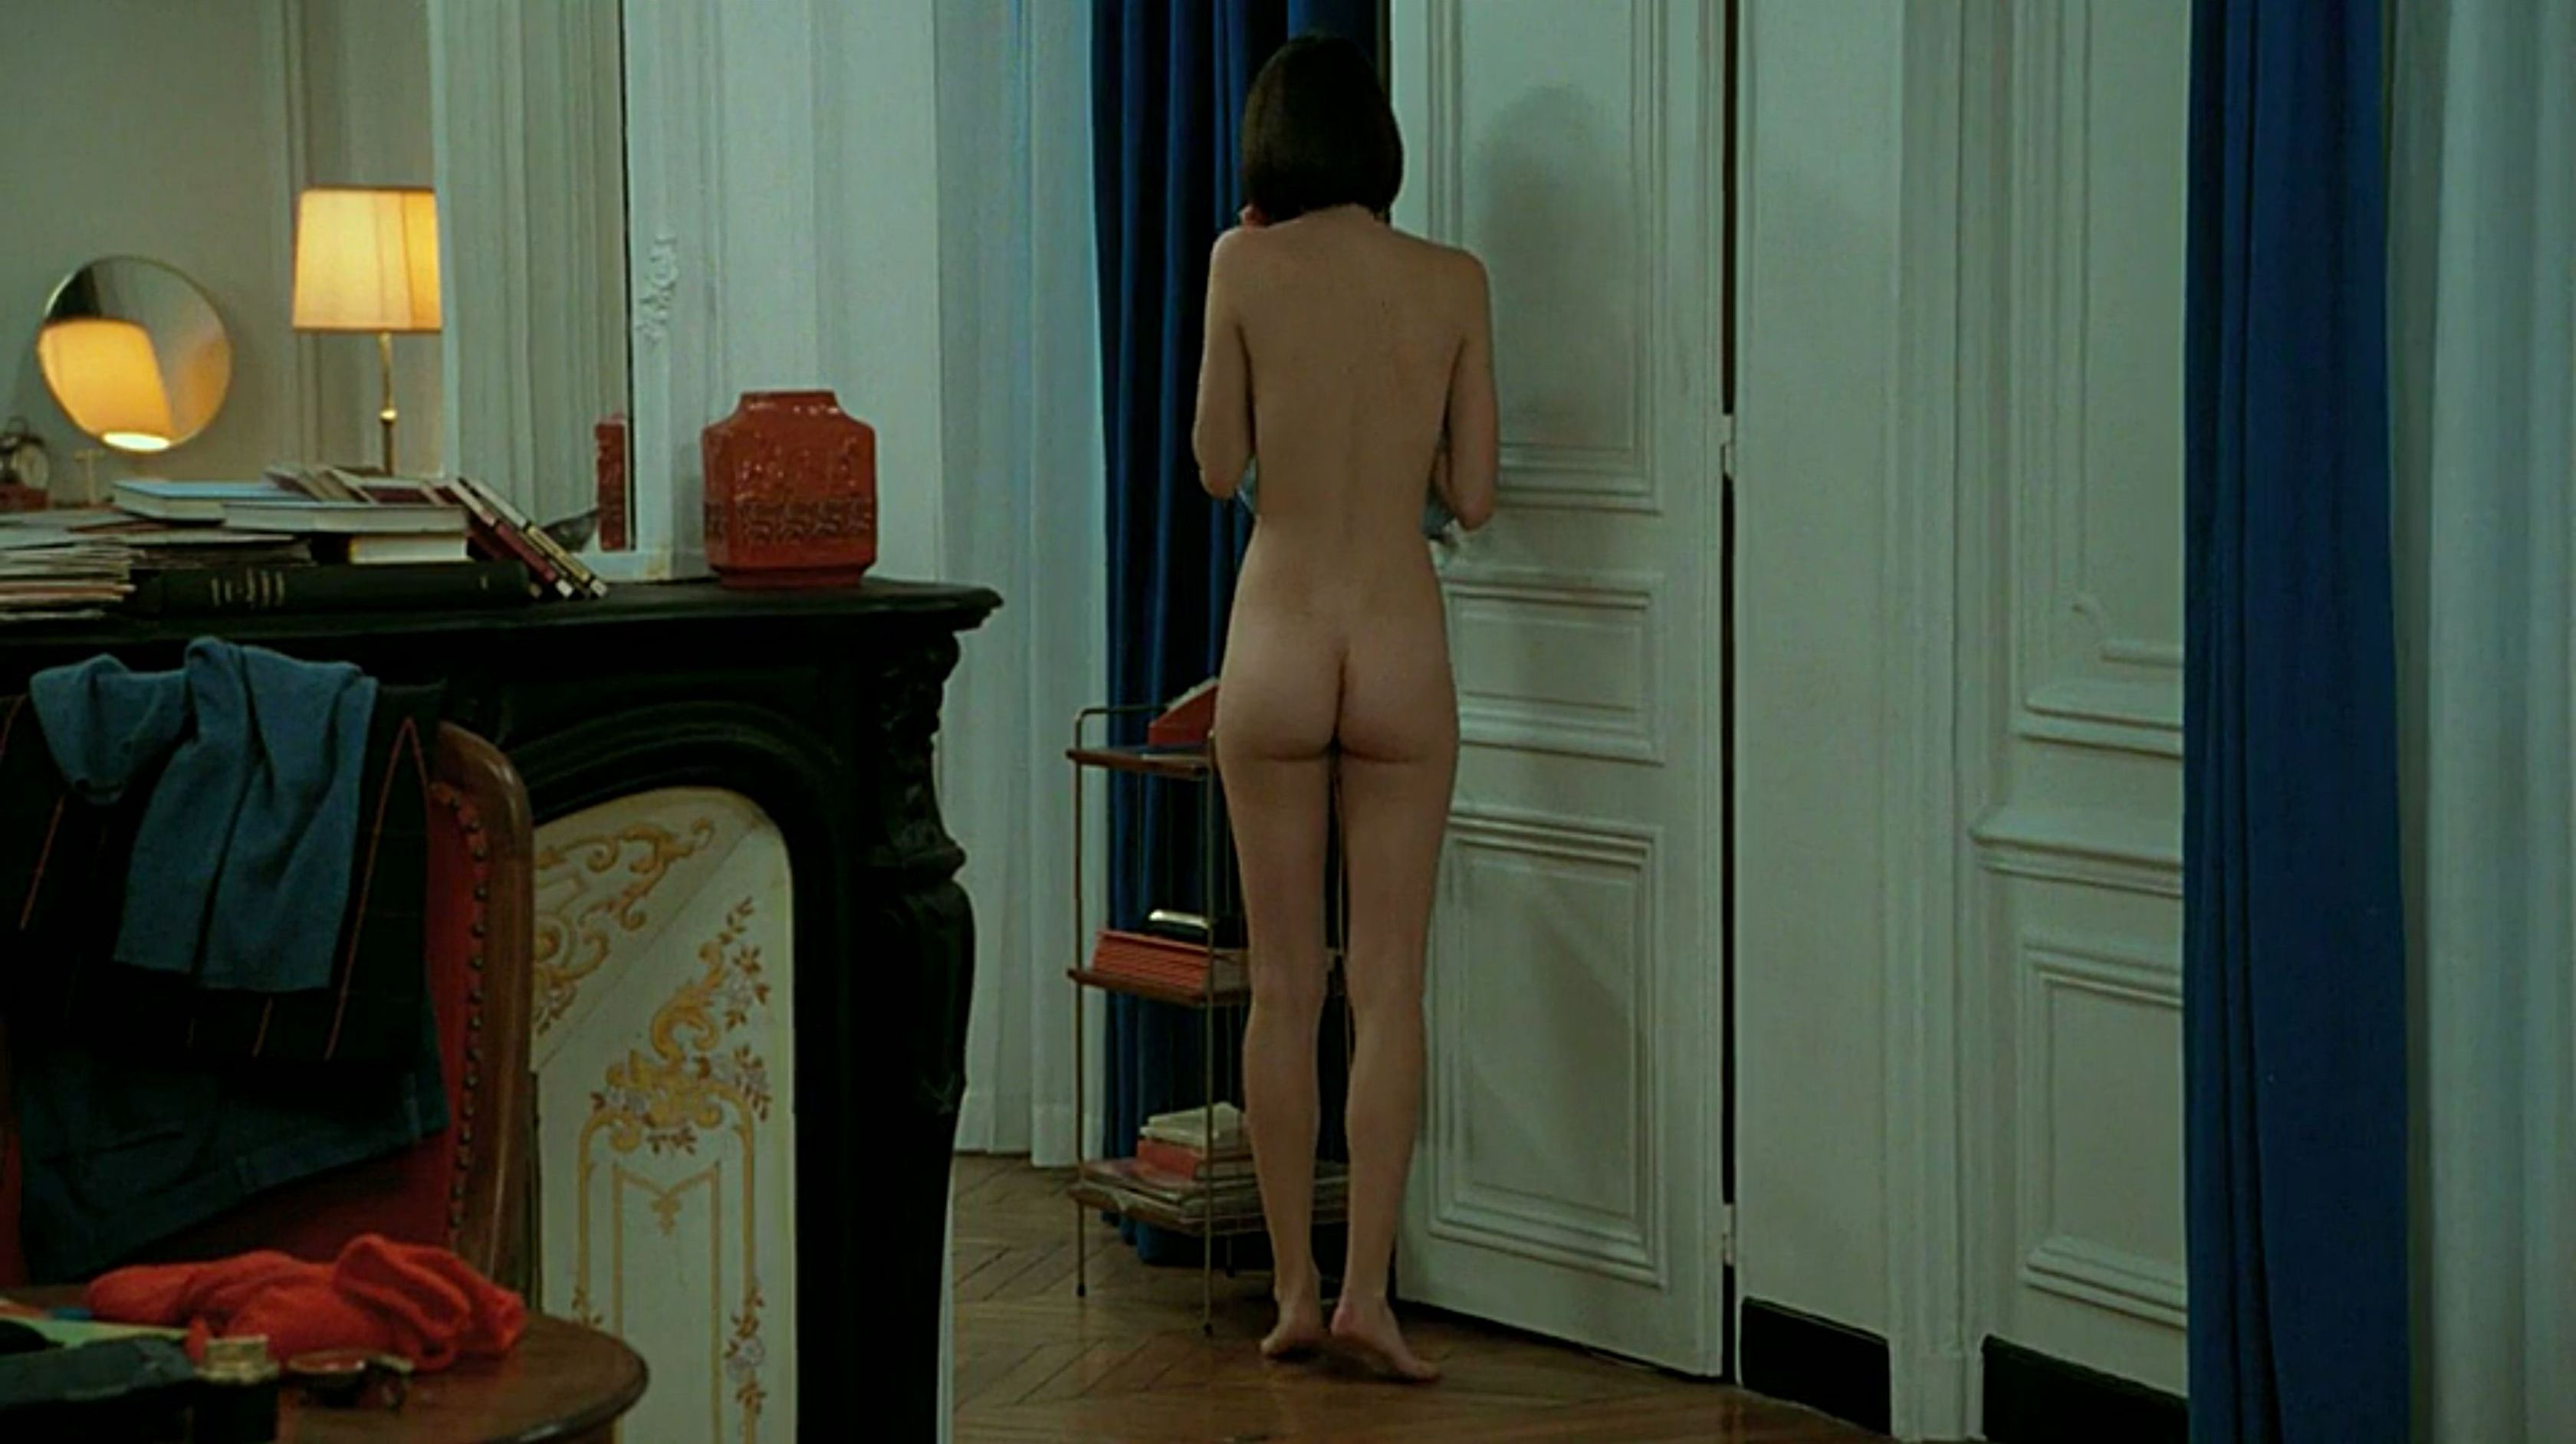 Stacy-Martin-Nude-Le-Redoutable-2017-14-The-Fappening-Blog.jpg